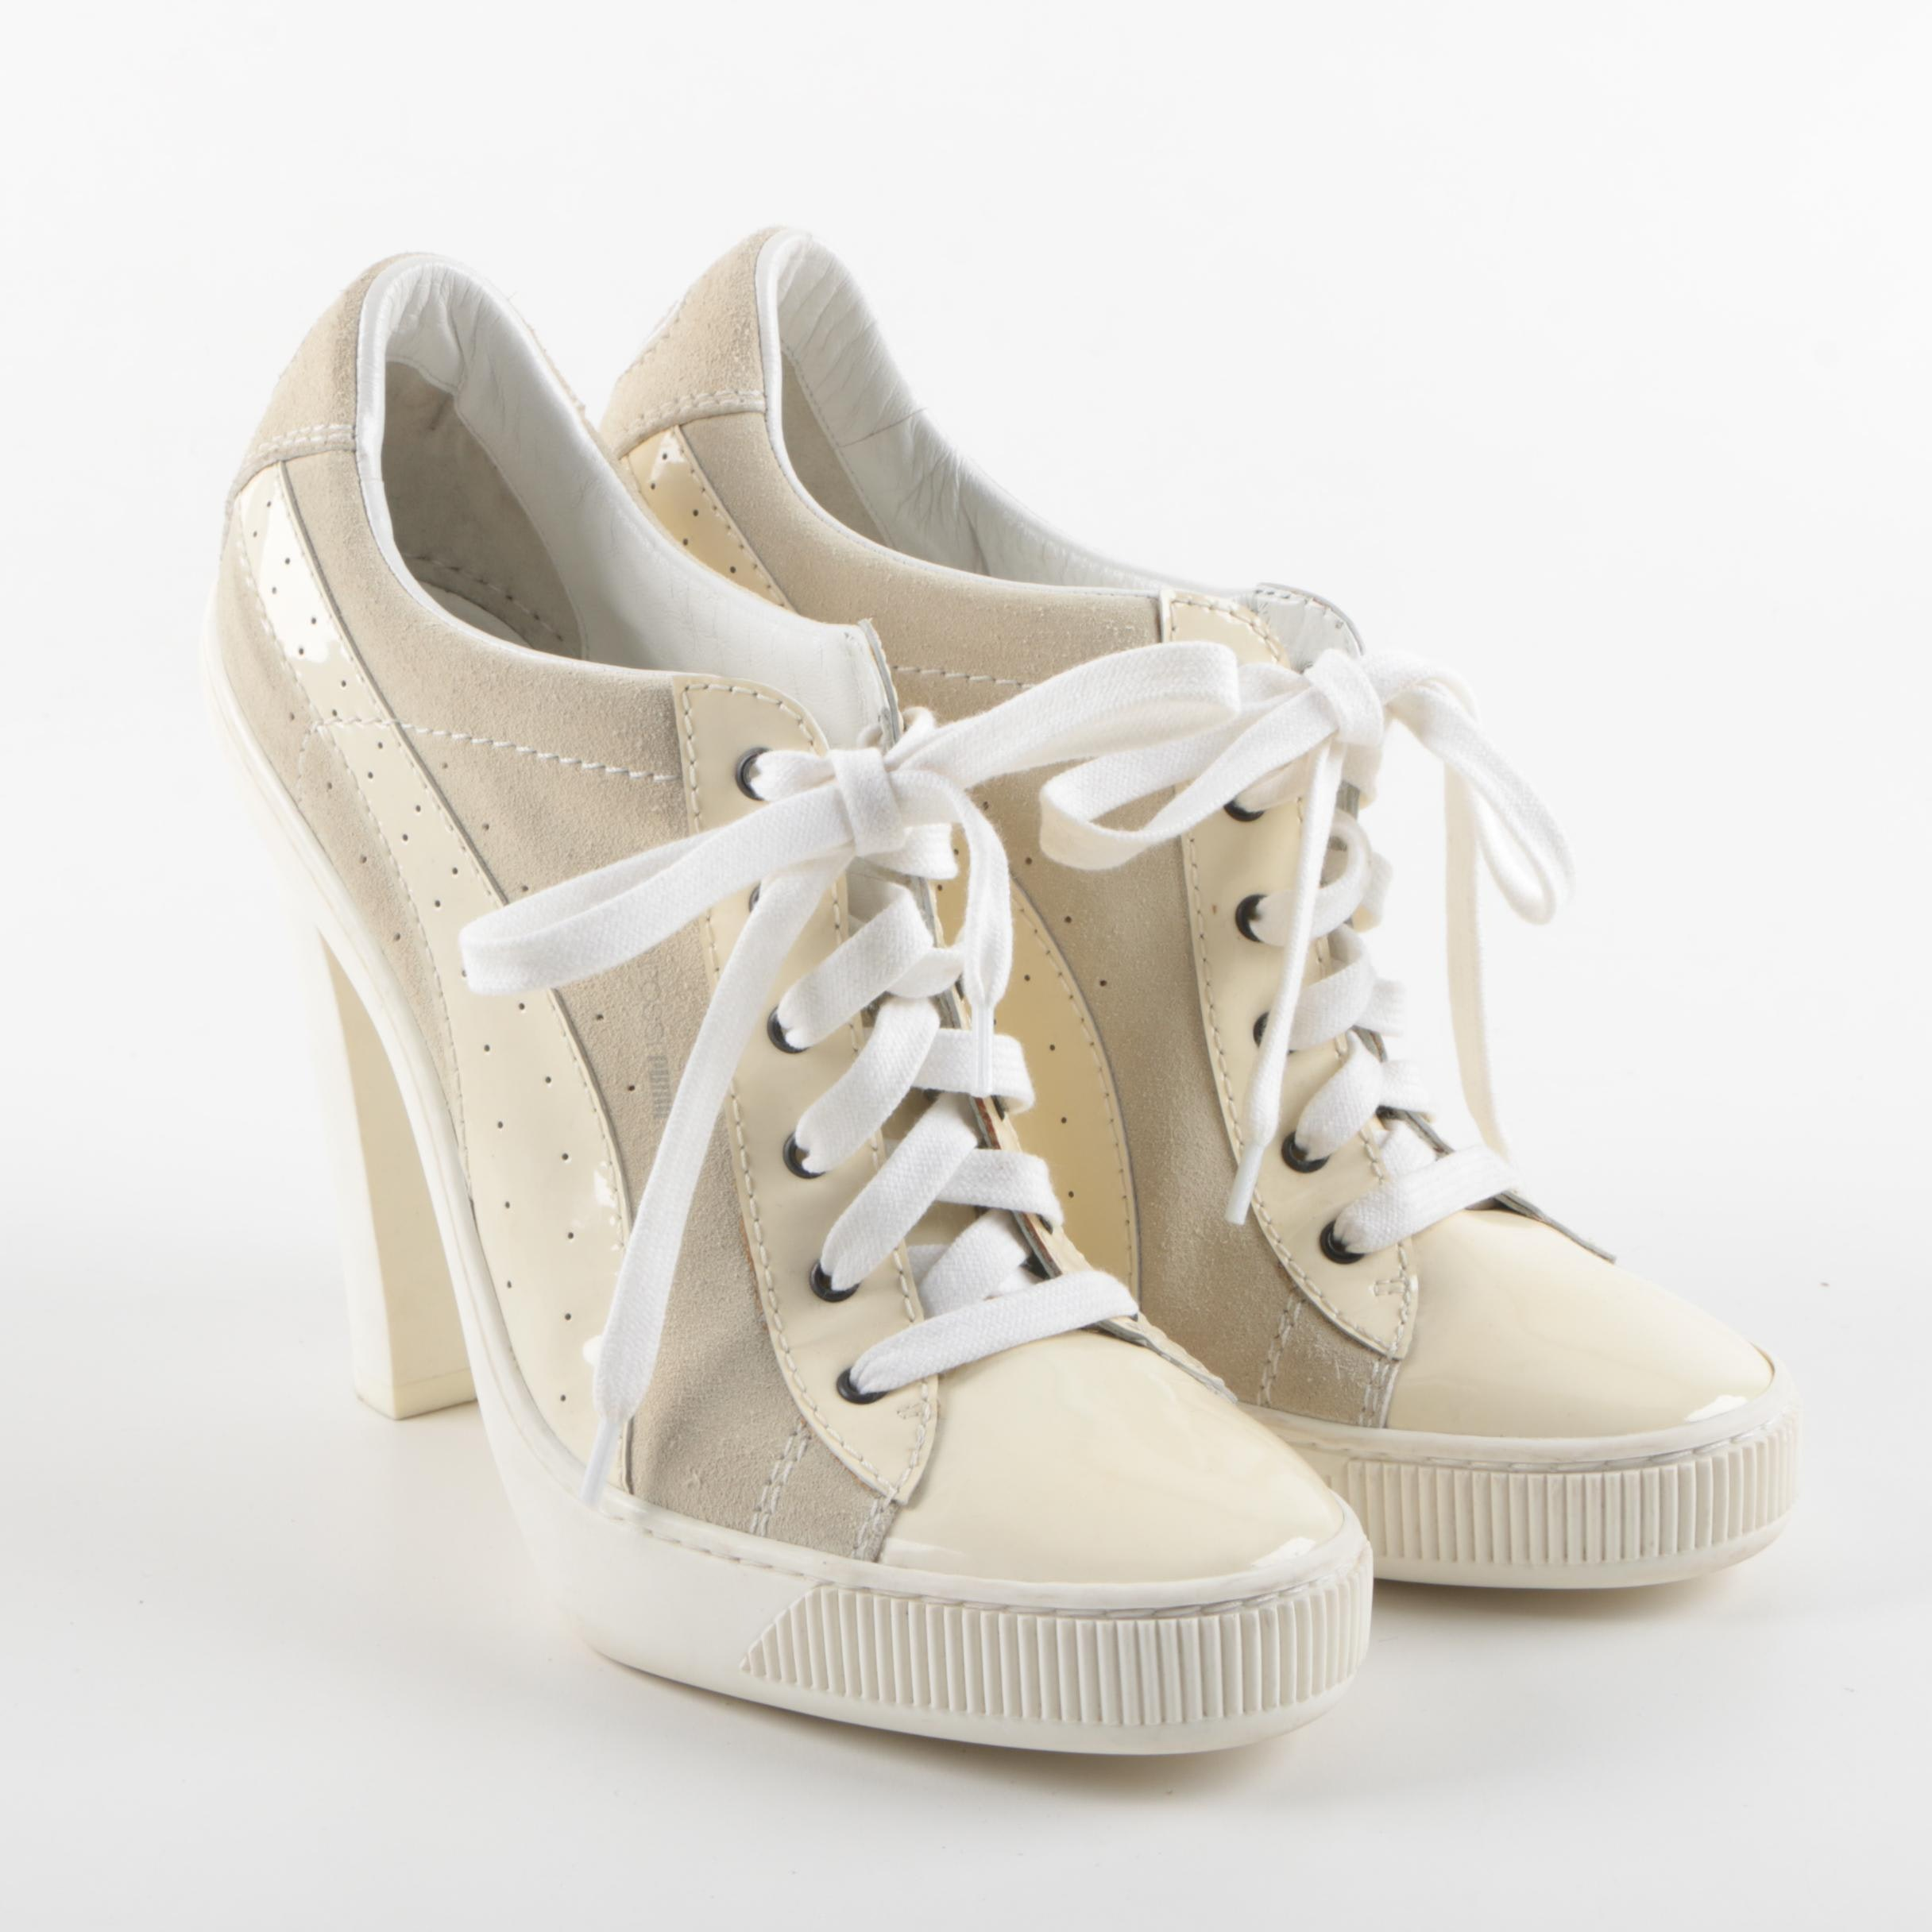 Sergio Rossi For Puma High Heel Trainers